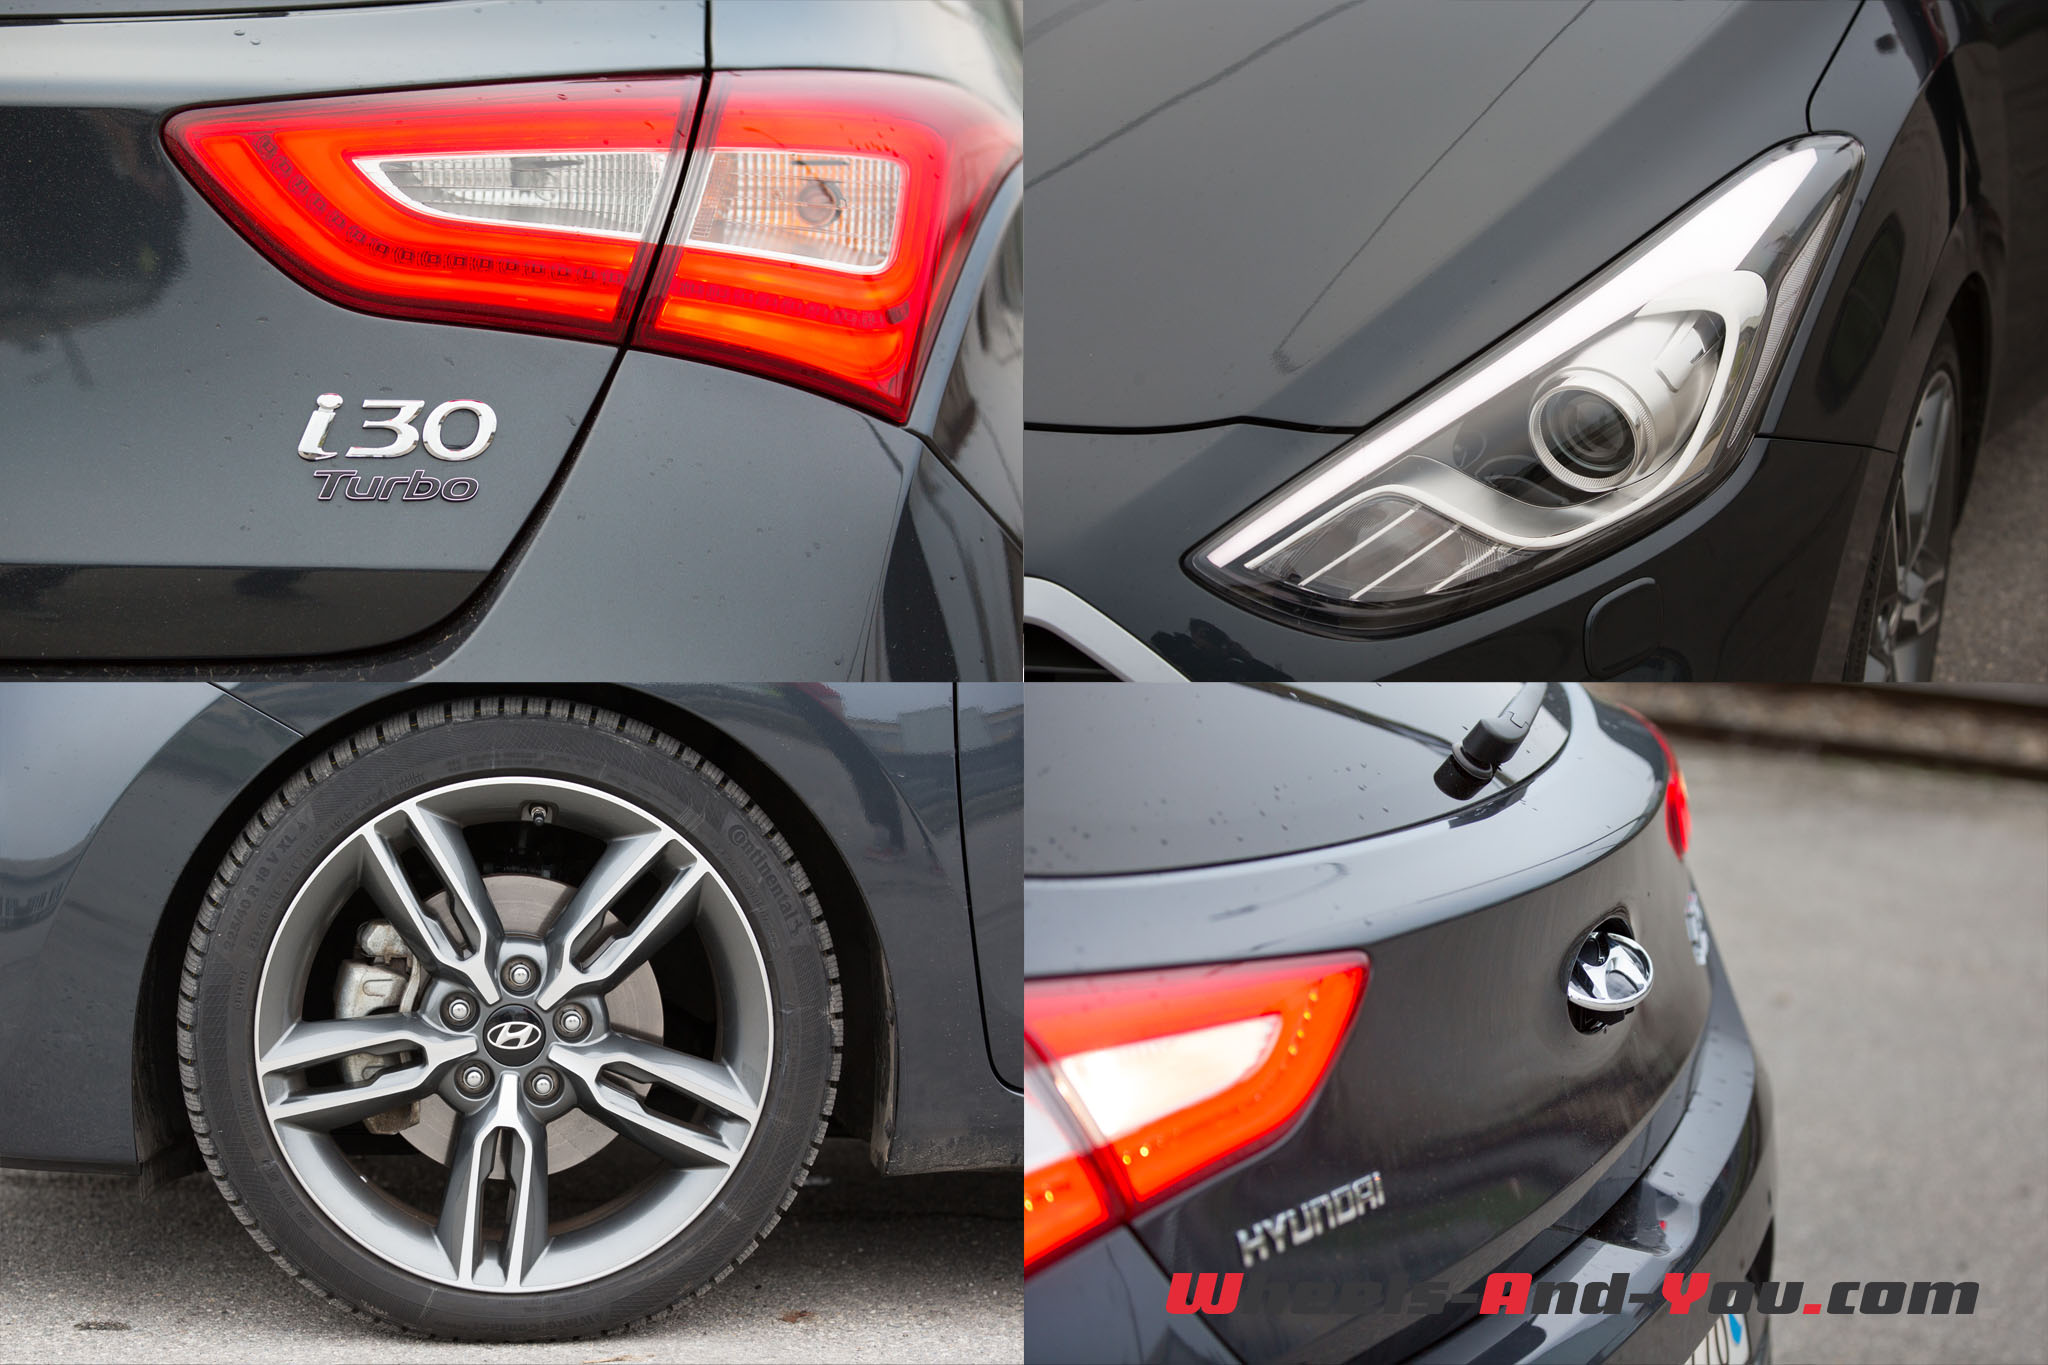 Hyundai i30turbo-46